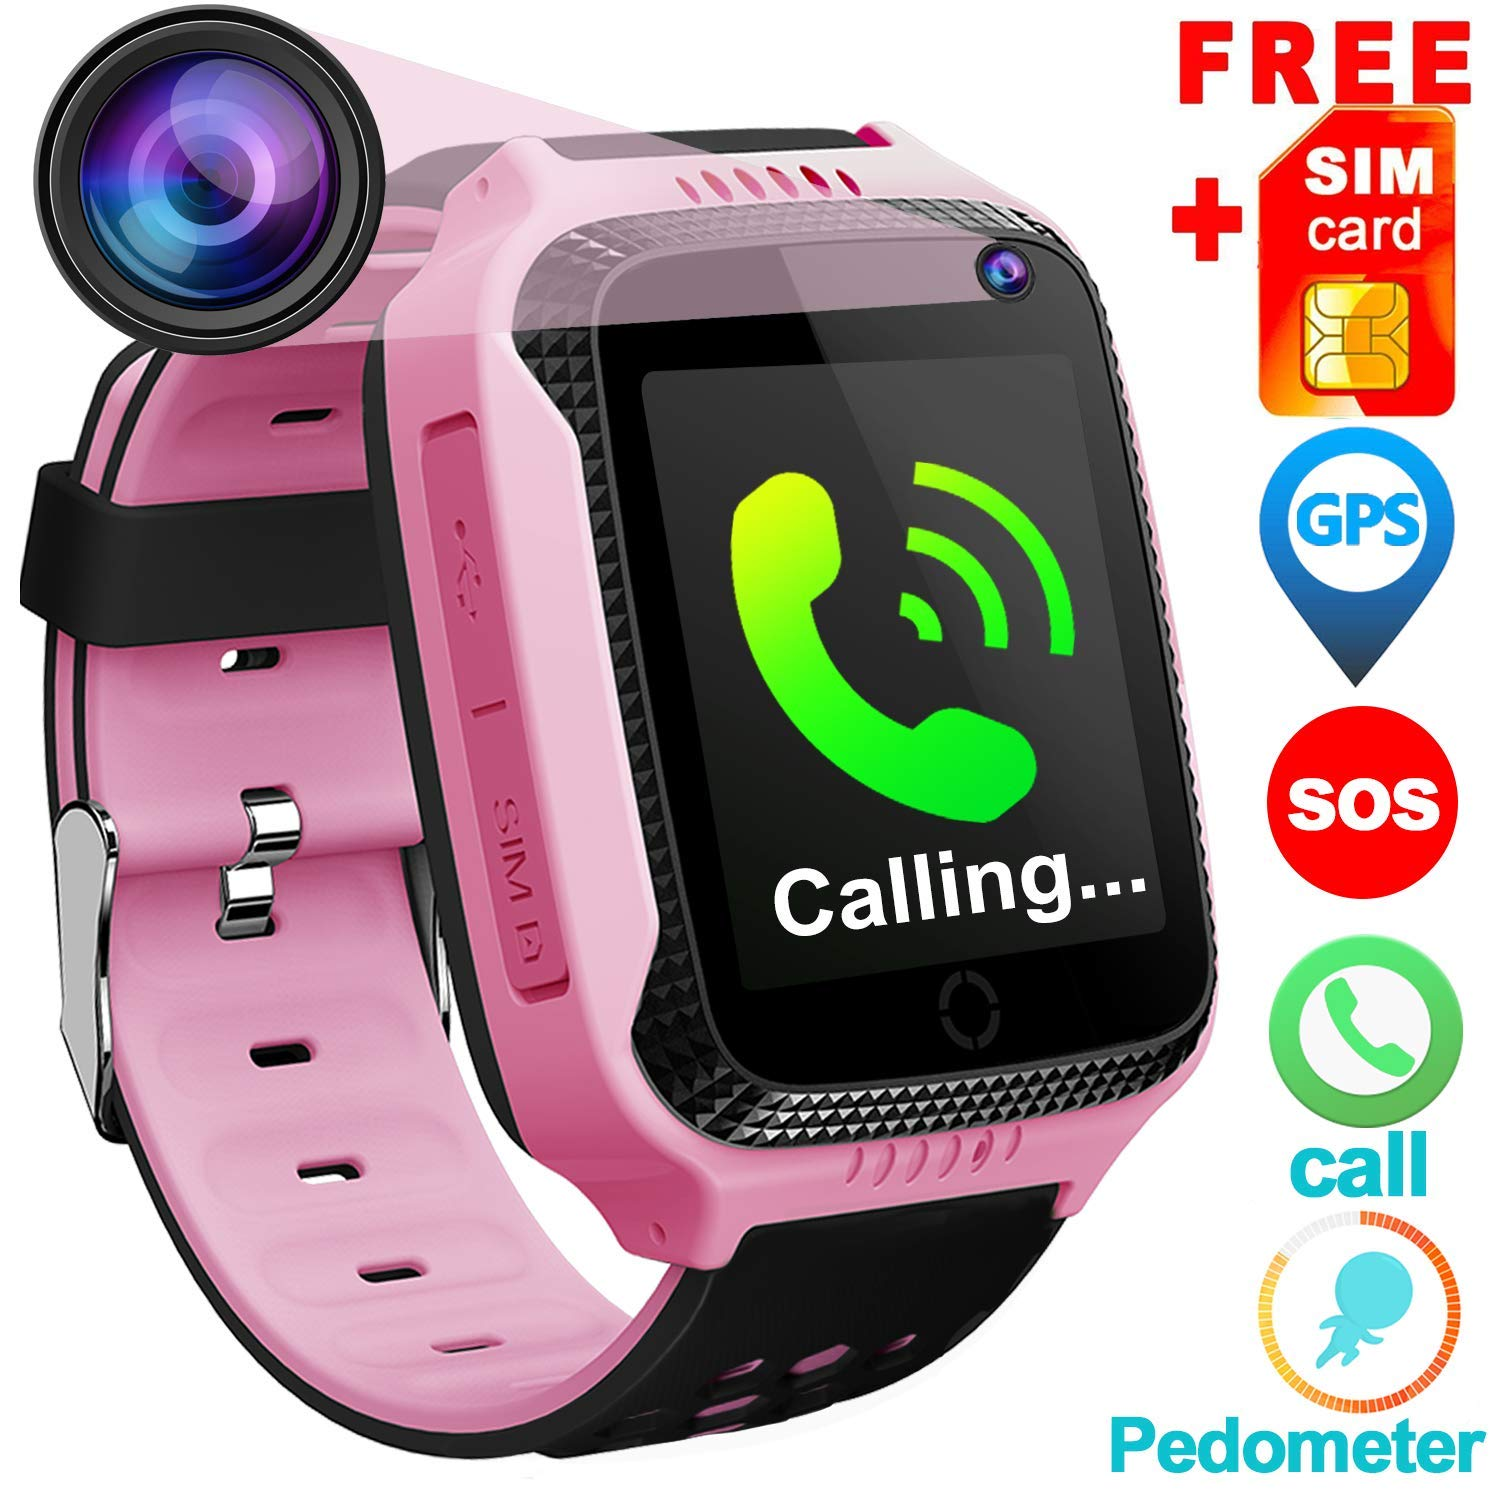 ec380e96950 Kids Phone Smart Watch for 3-12 Year Old Boys Girls GPS Tracker with Free